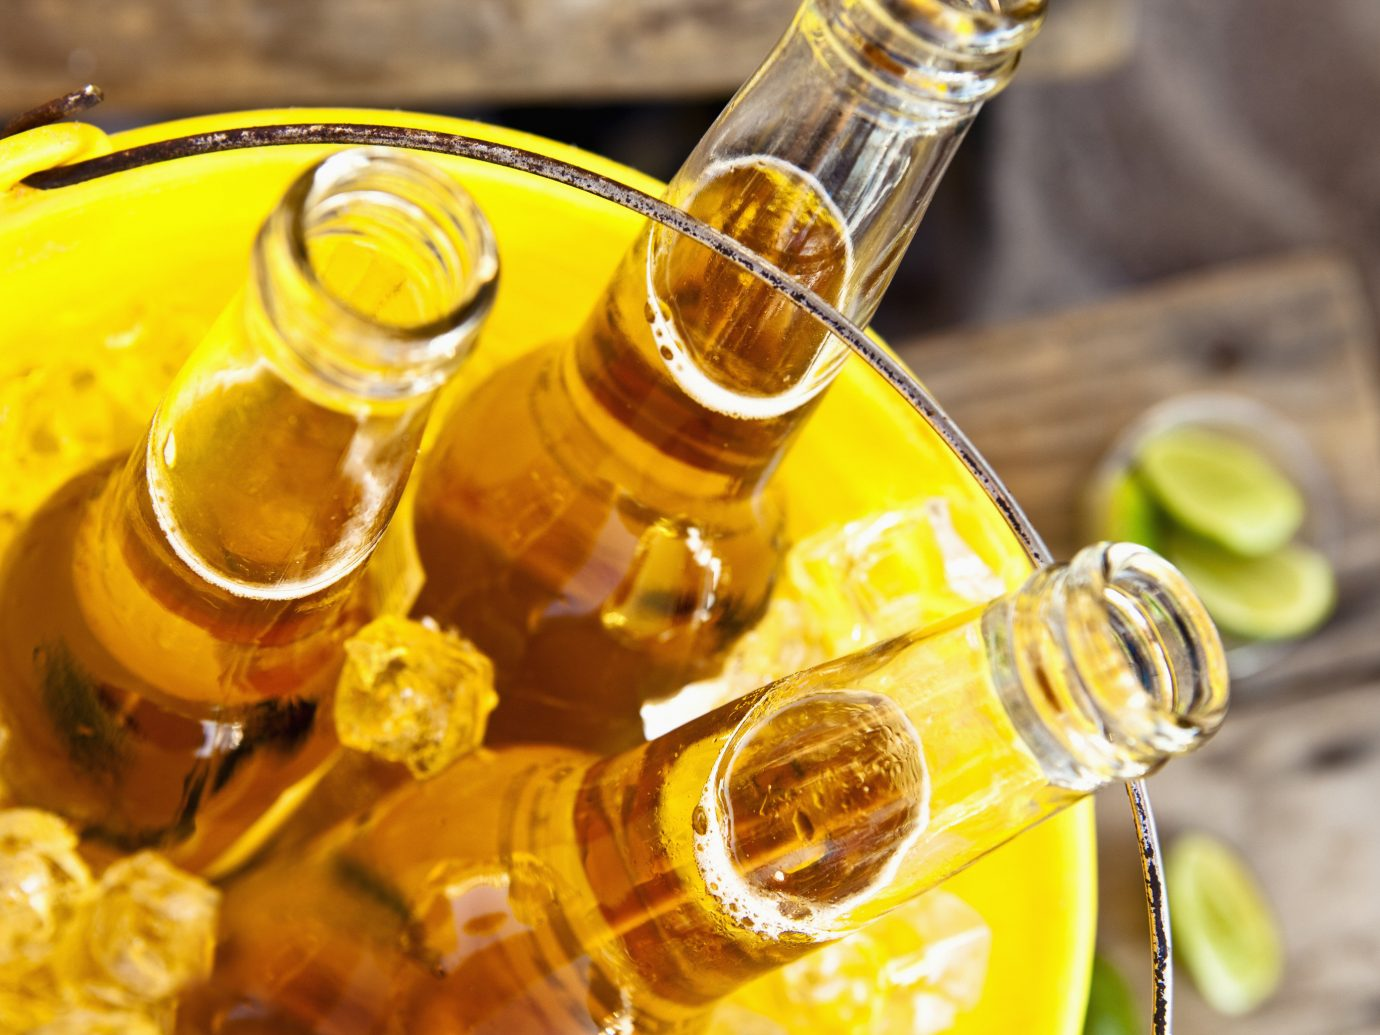 Beach yellow liqueur alcoholic beverage distilled beverage food alcohol land plant Drink produce wine macro photography bottle flowering plant gold meal honey